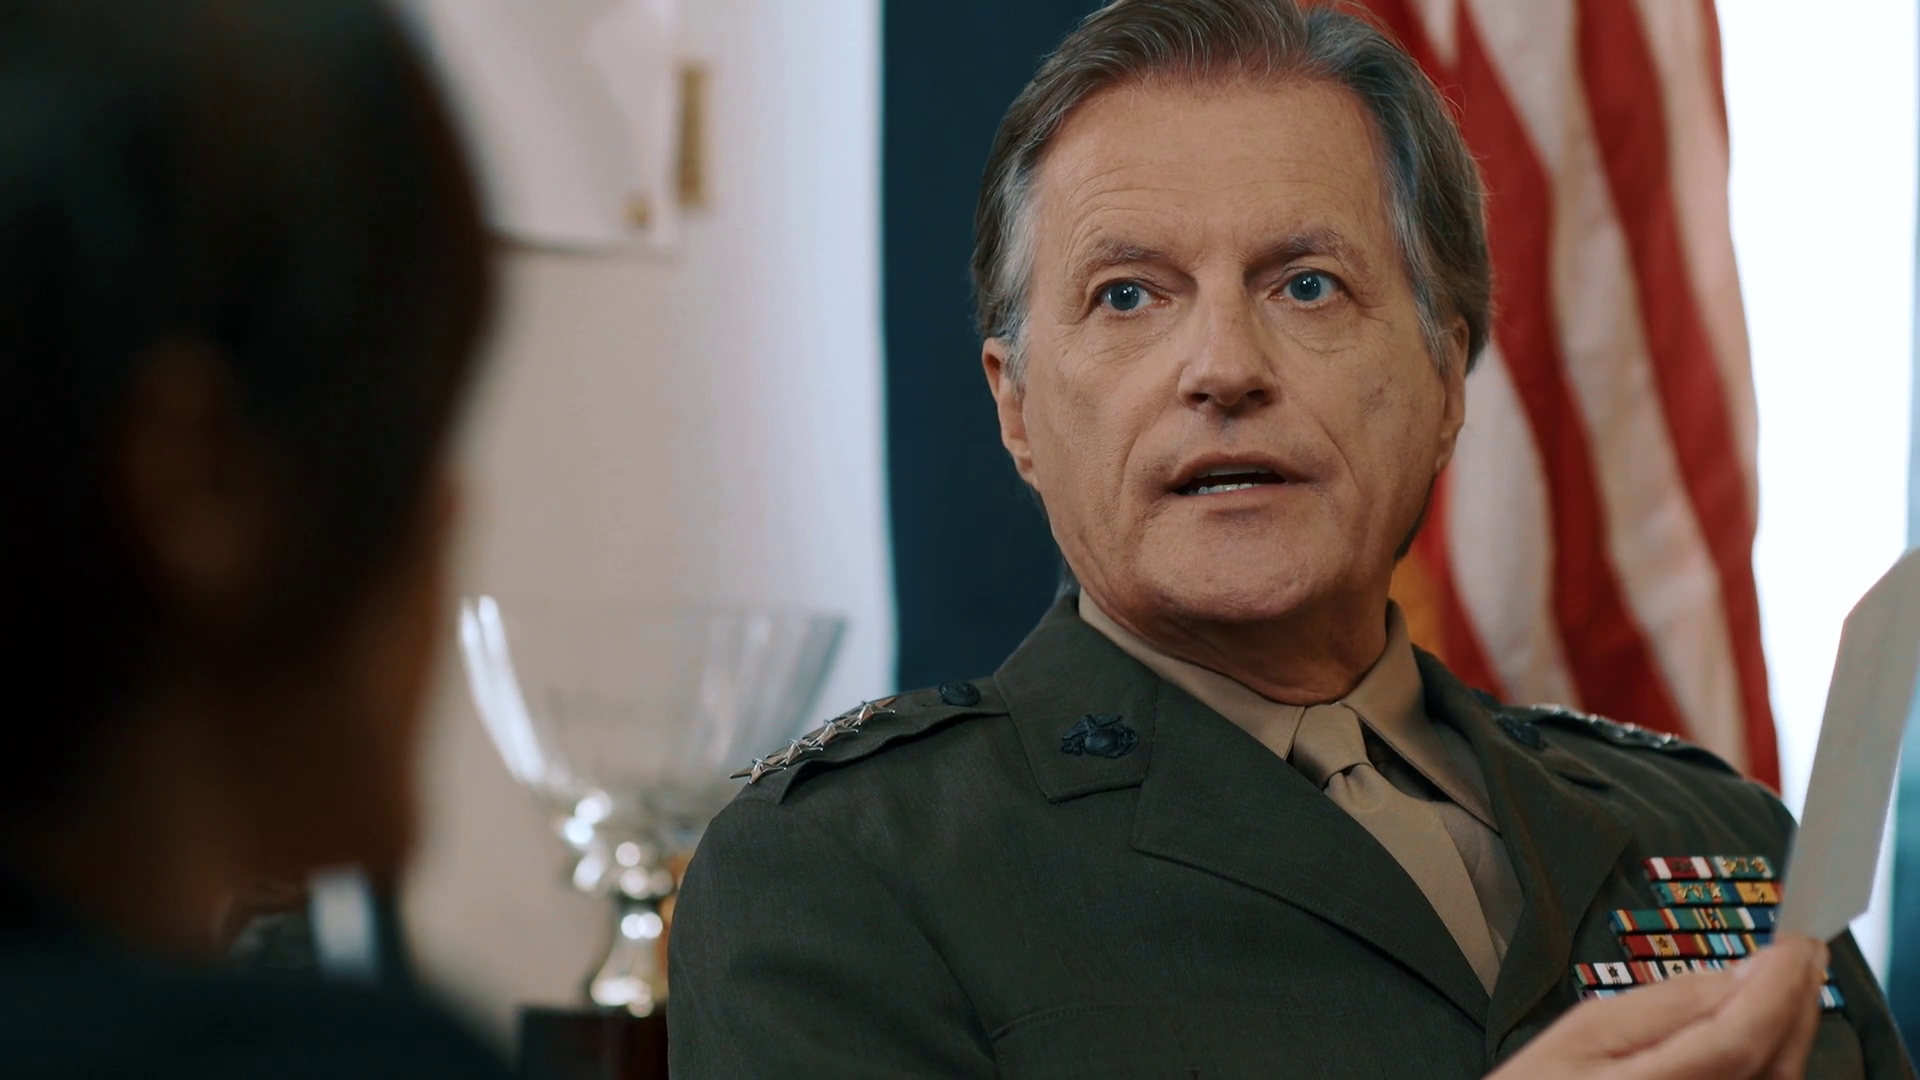 As General Dunkirk in SPACE FORCE (2019)